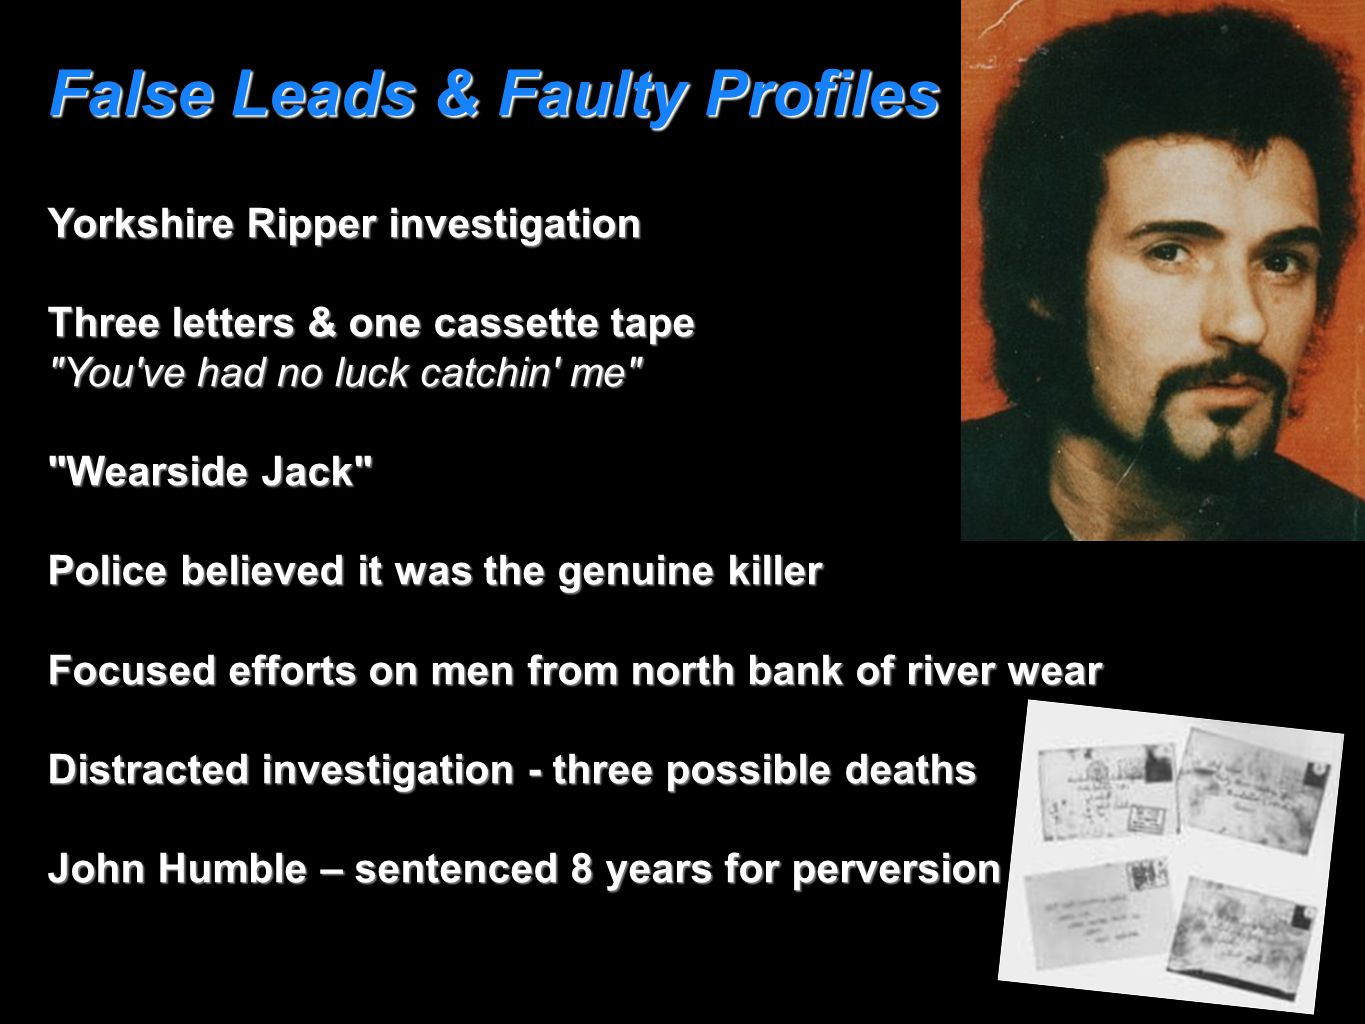 False Leads & Faulty Profiles Yorkshire Ripper investigation Three letters & one cassette tape You ve had no luck catchin me Wearside Jack Police believed it was the genuine killer Focused efforts on men from north bank of river wear Distracted investigation - three possible deaths John Humble – sentenced 8 years for perversion